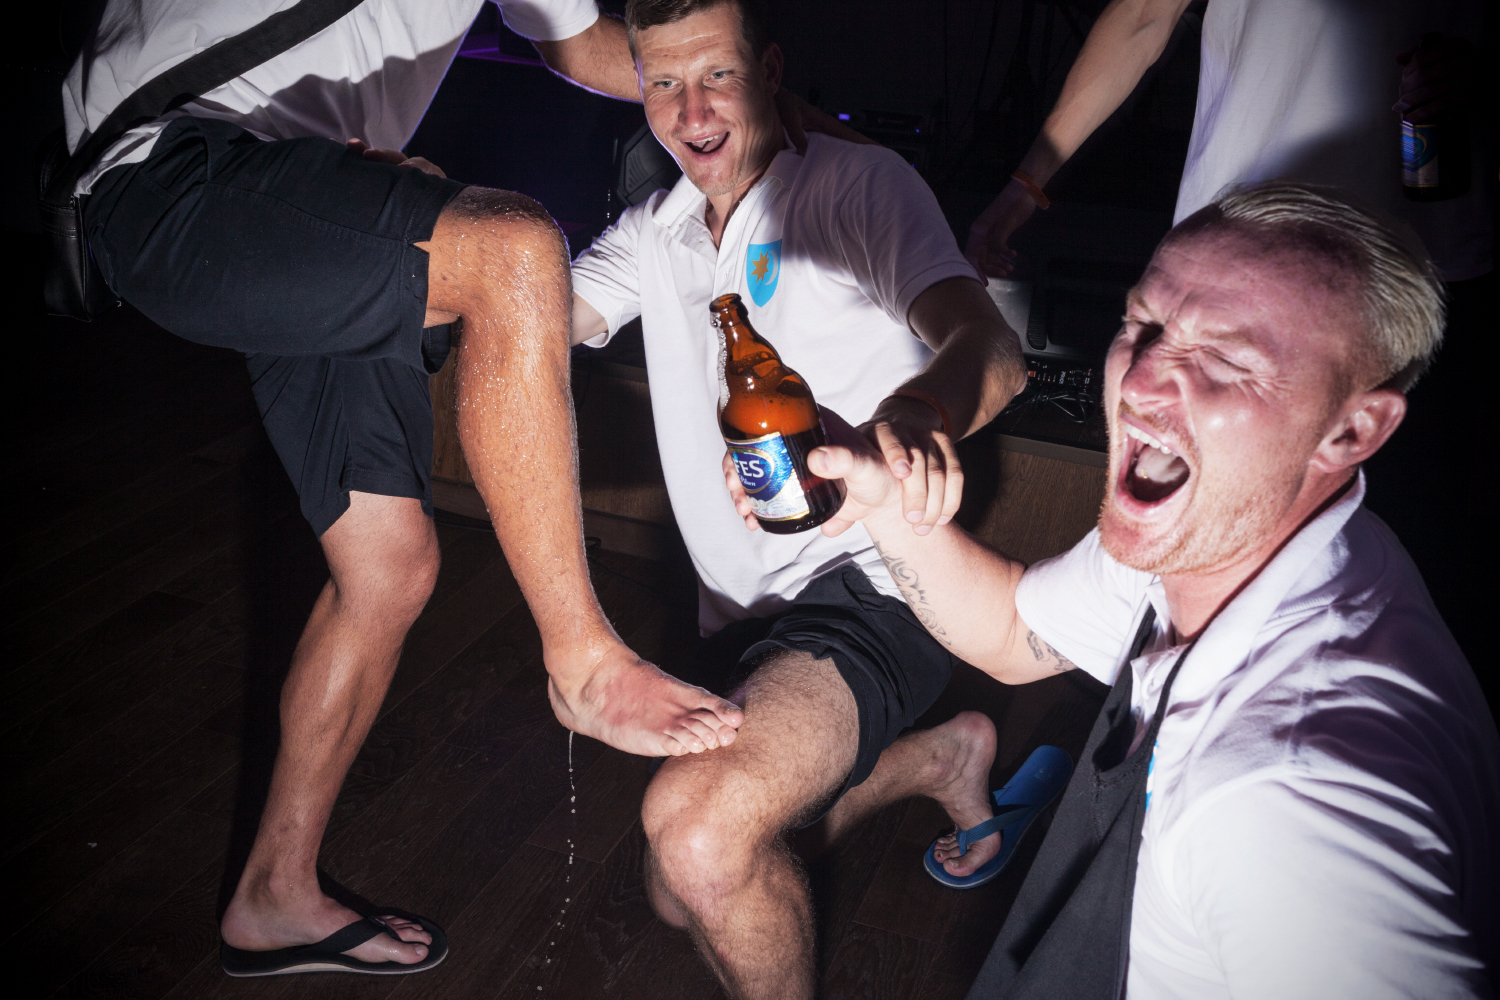 TRNC (Turkish Republic of North Cyprus) , Girne, June 2017.Szekelyland's players celebrate a victory in a nightclub in Girne